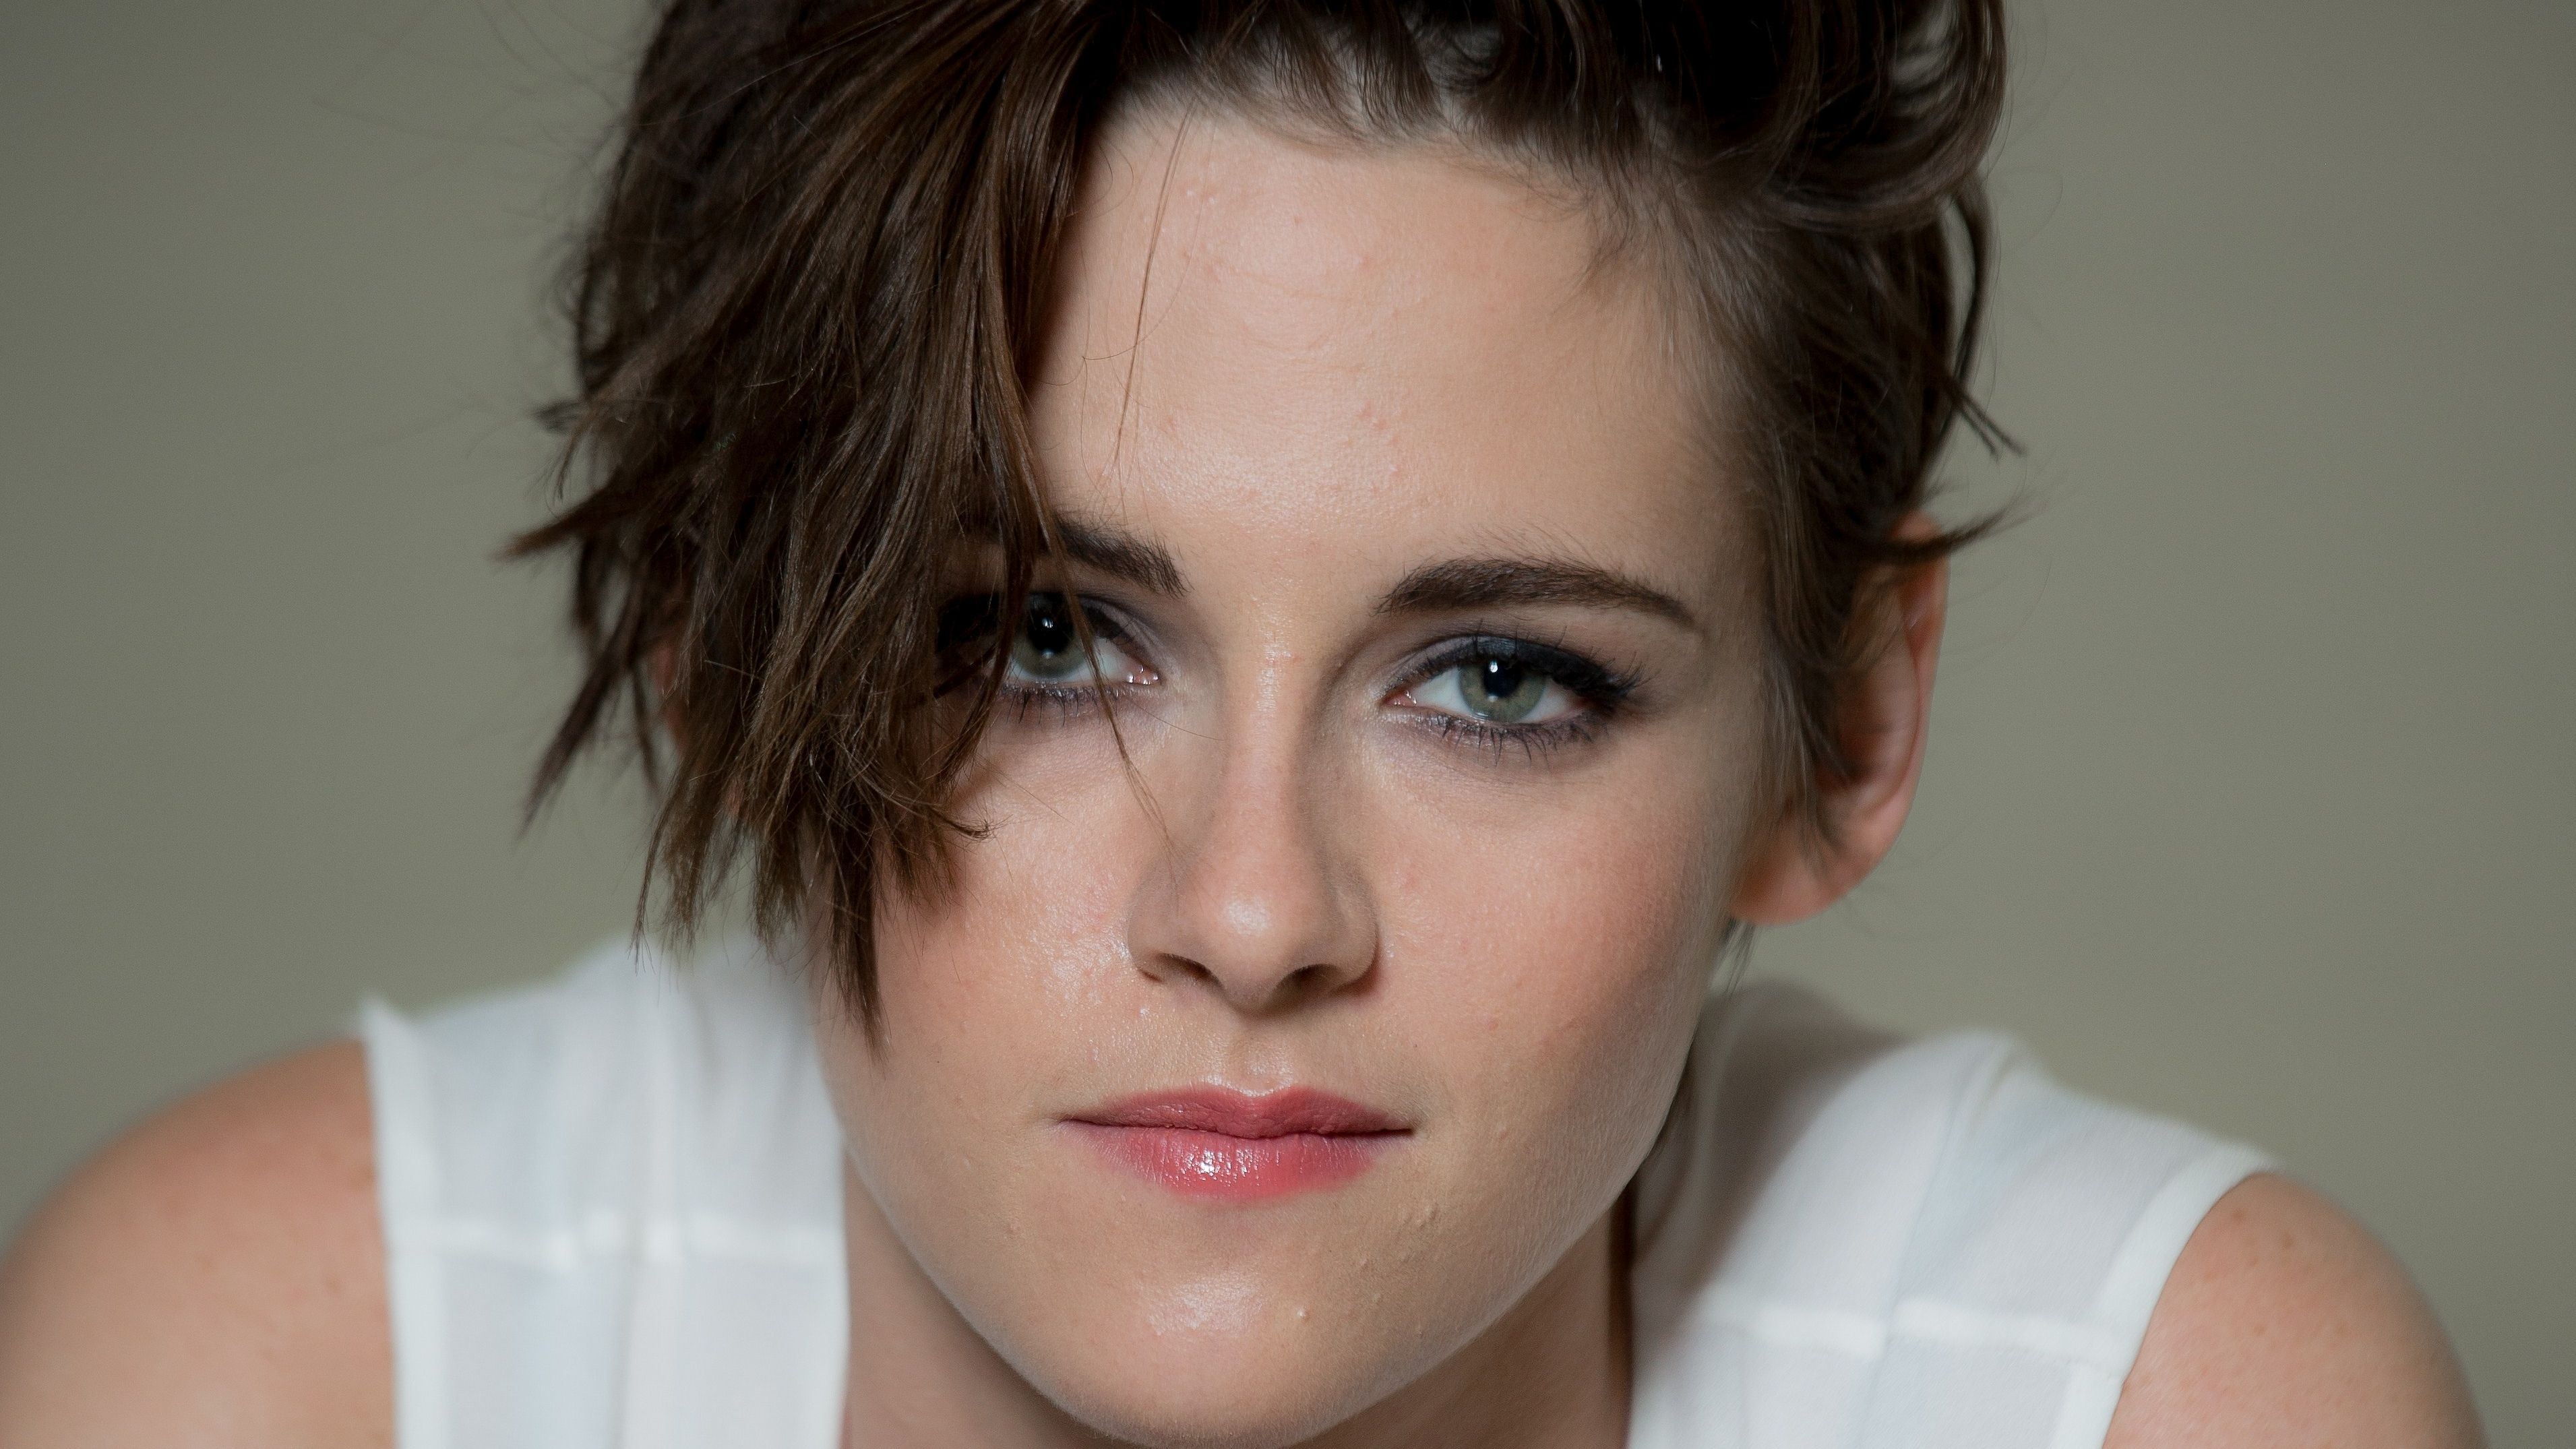 Kristen stewart iphone wallpaper tumblr - Kristen Stewart Hot Photo Kristen Stewart Hd Wallpaper